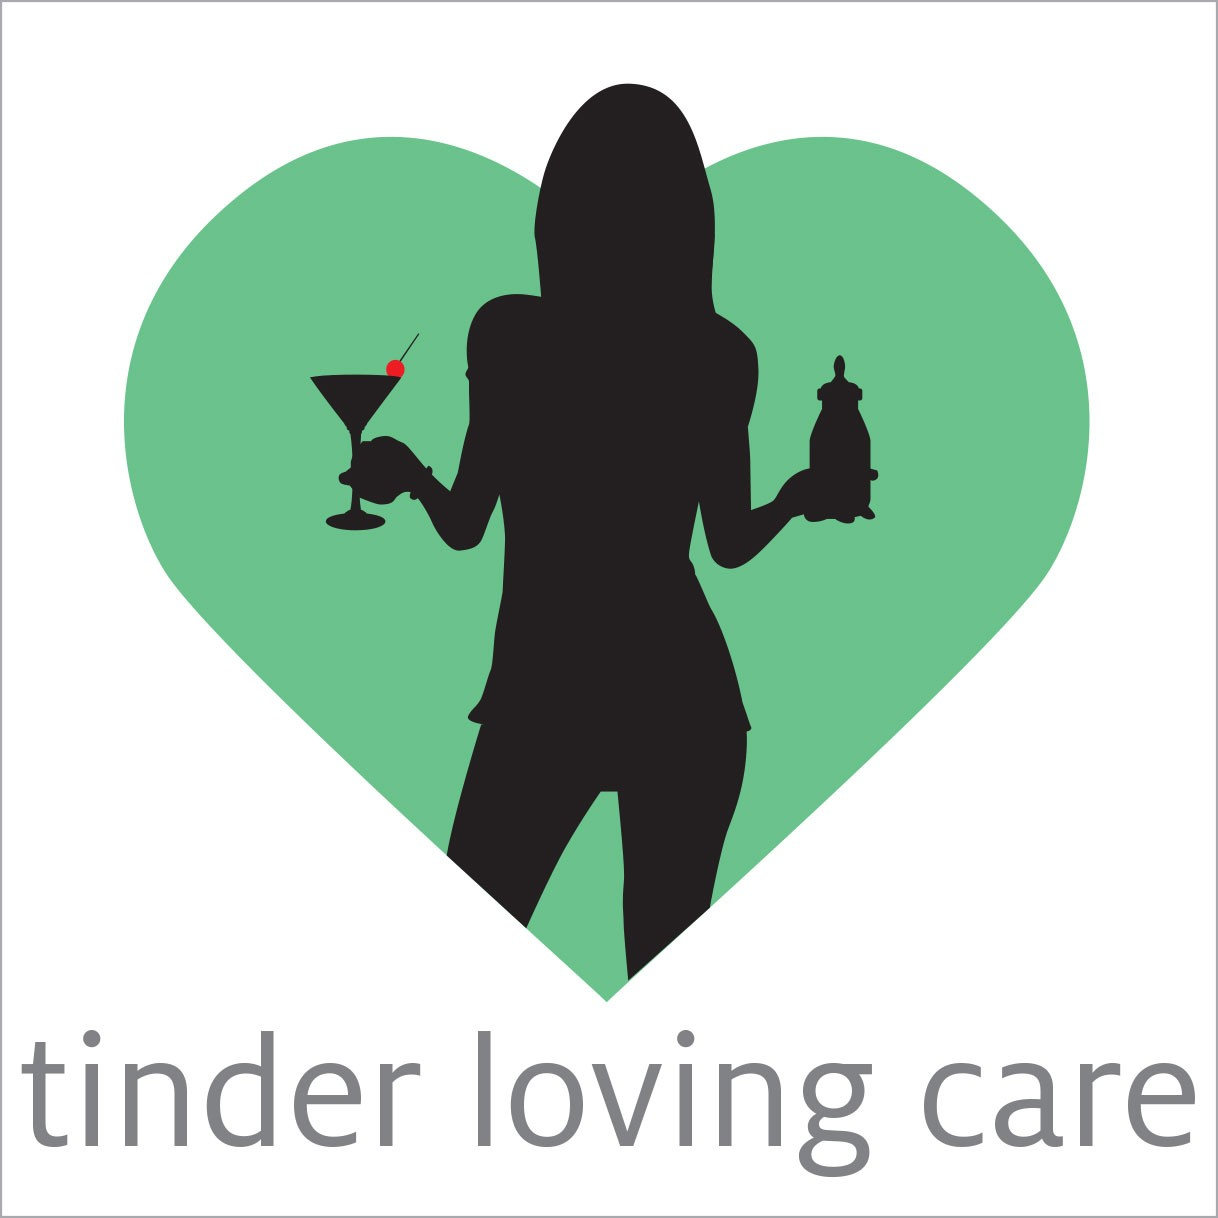 Create Your Profile with Tinder Loving Care